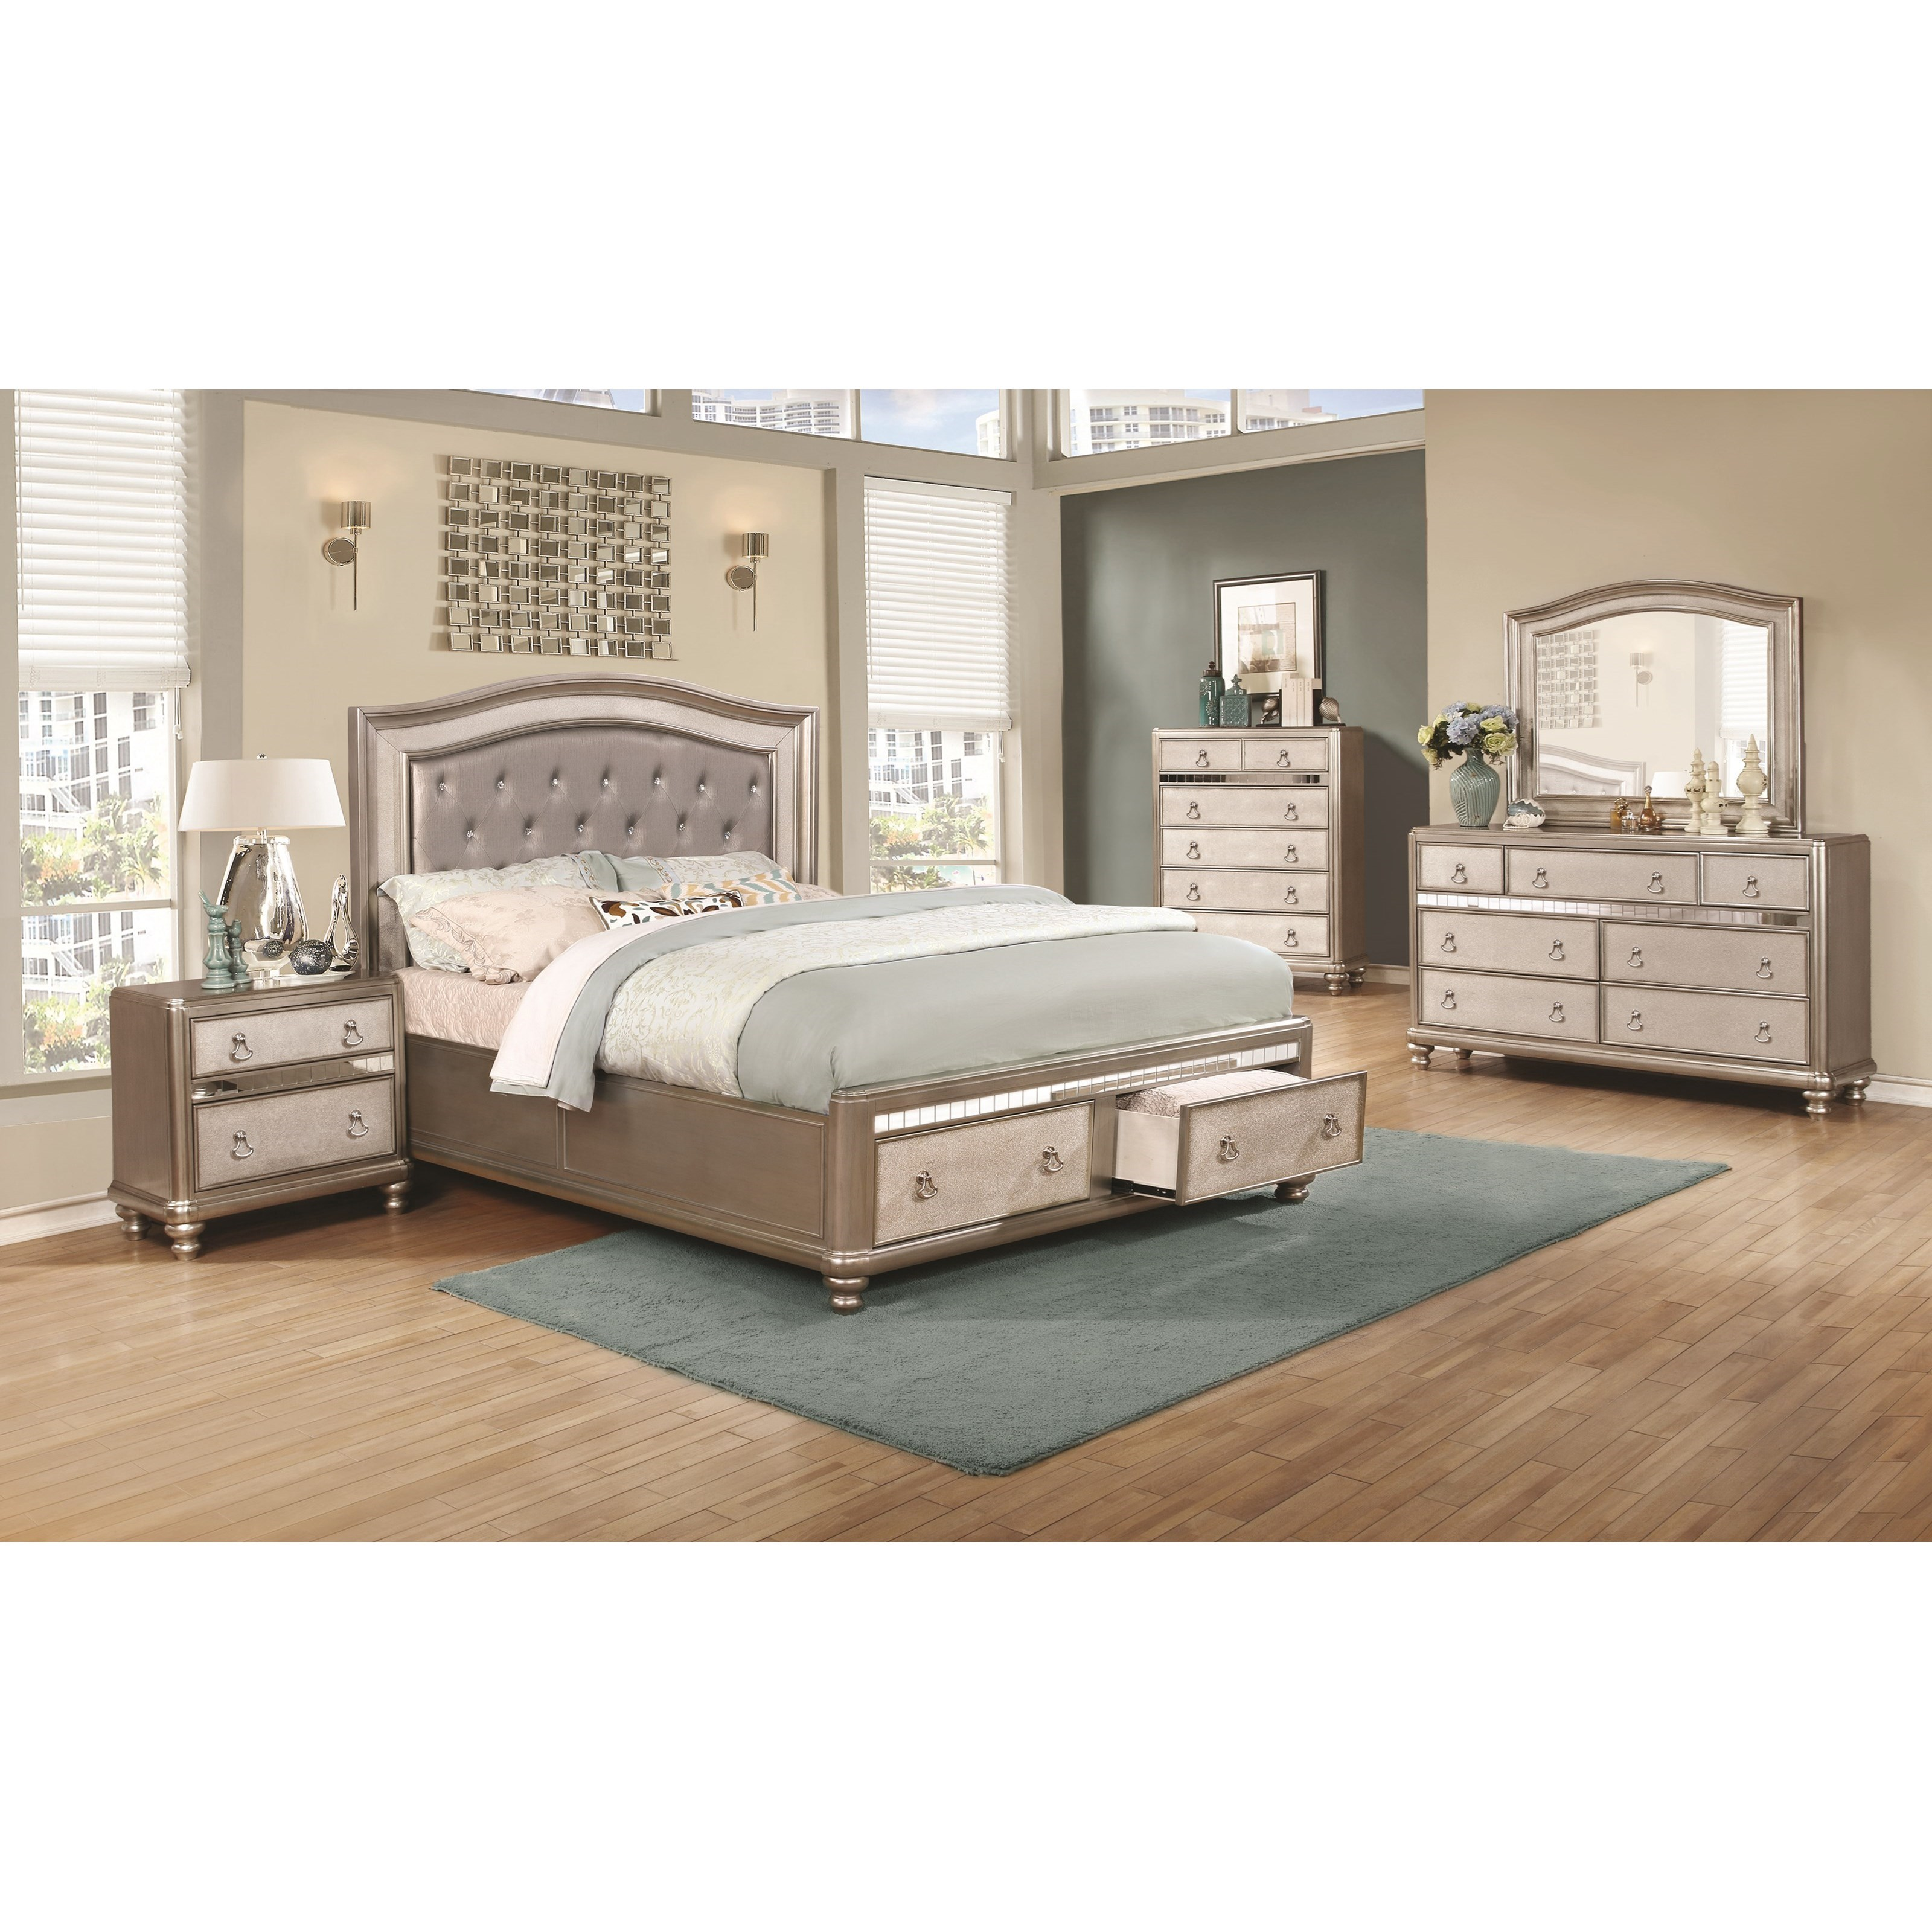 Coaster Bling Game Queen Bedroom Group With Storage Bed Miskelly Furniture Bedroom Groups